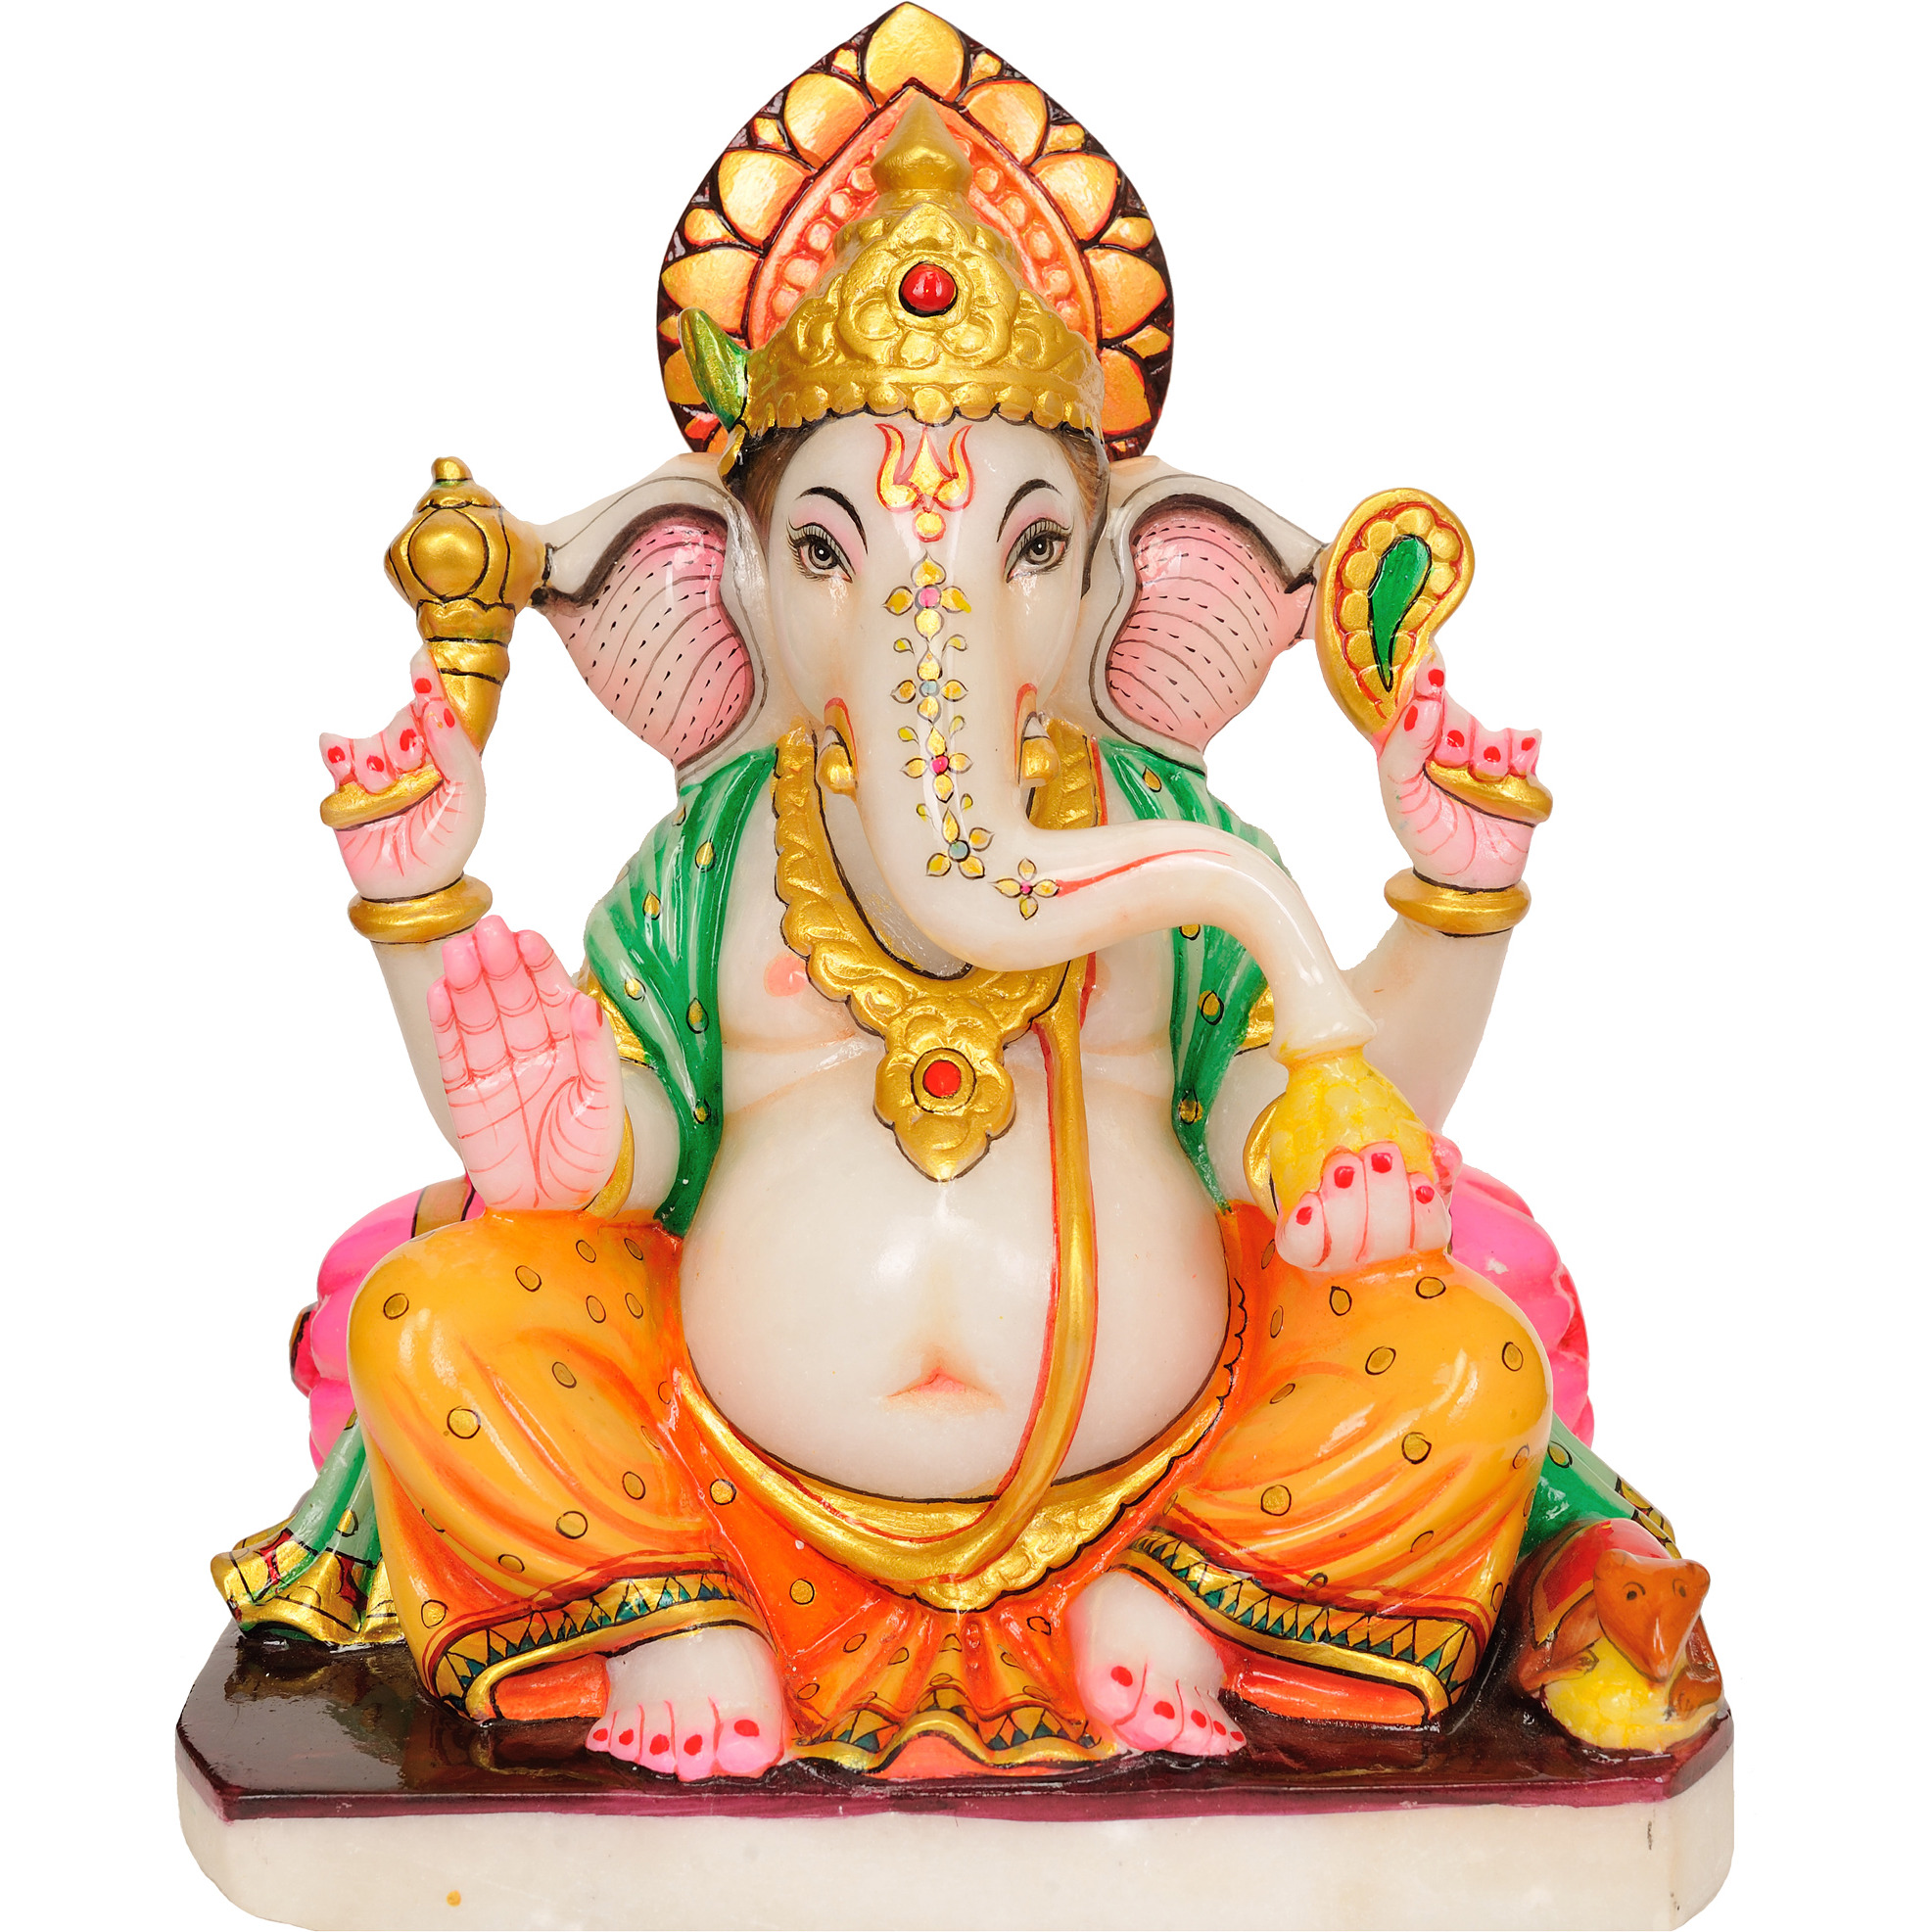 The Affectionate Ganesha